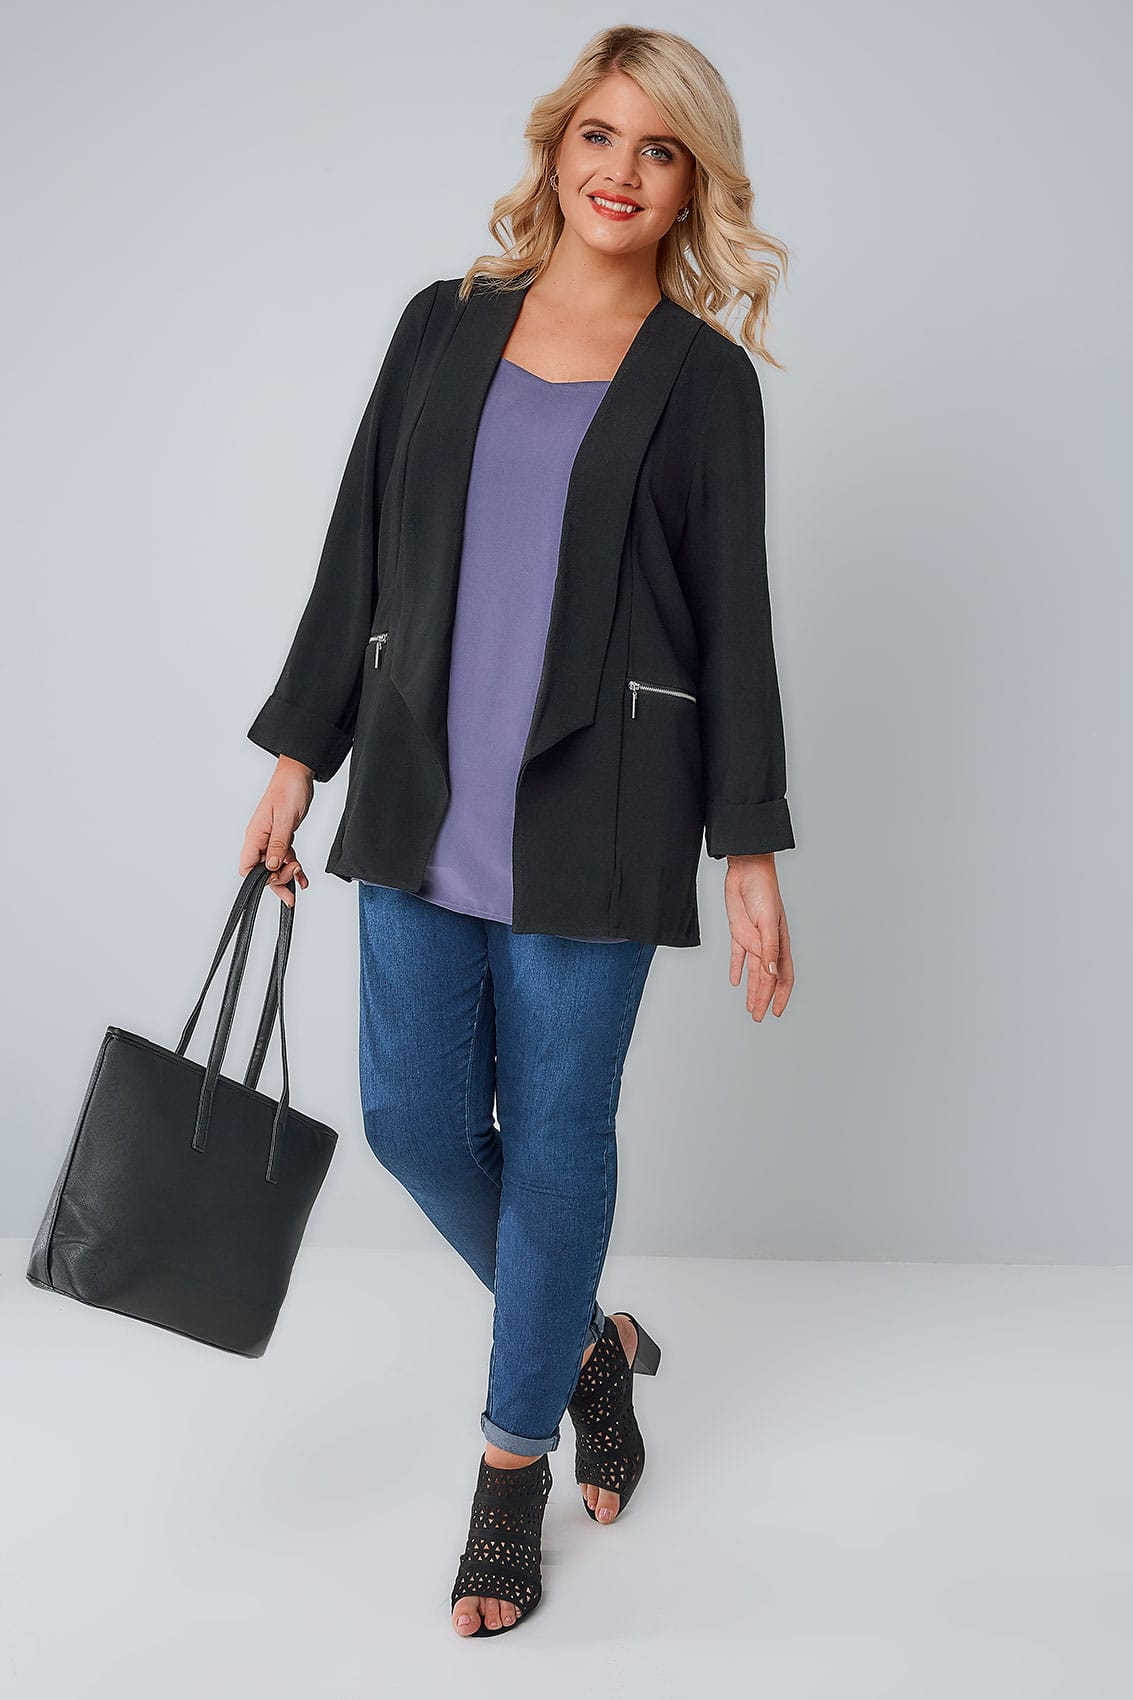 Black Bubble Crepe Blazer Jacket With Zip Pockets Plus